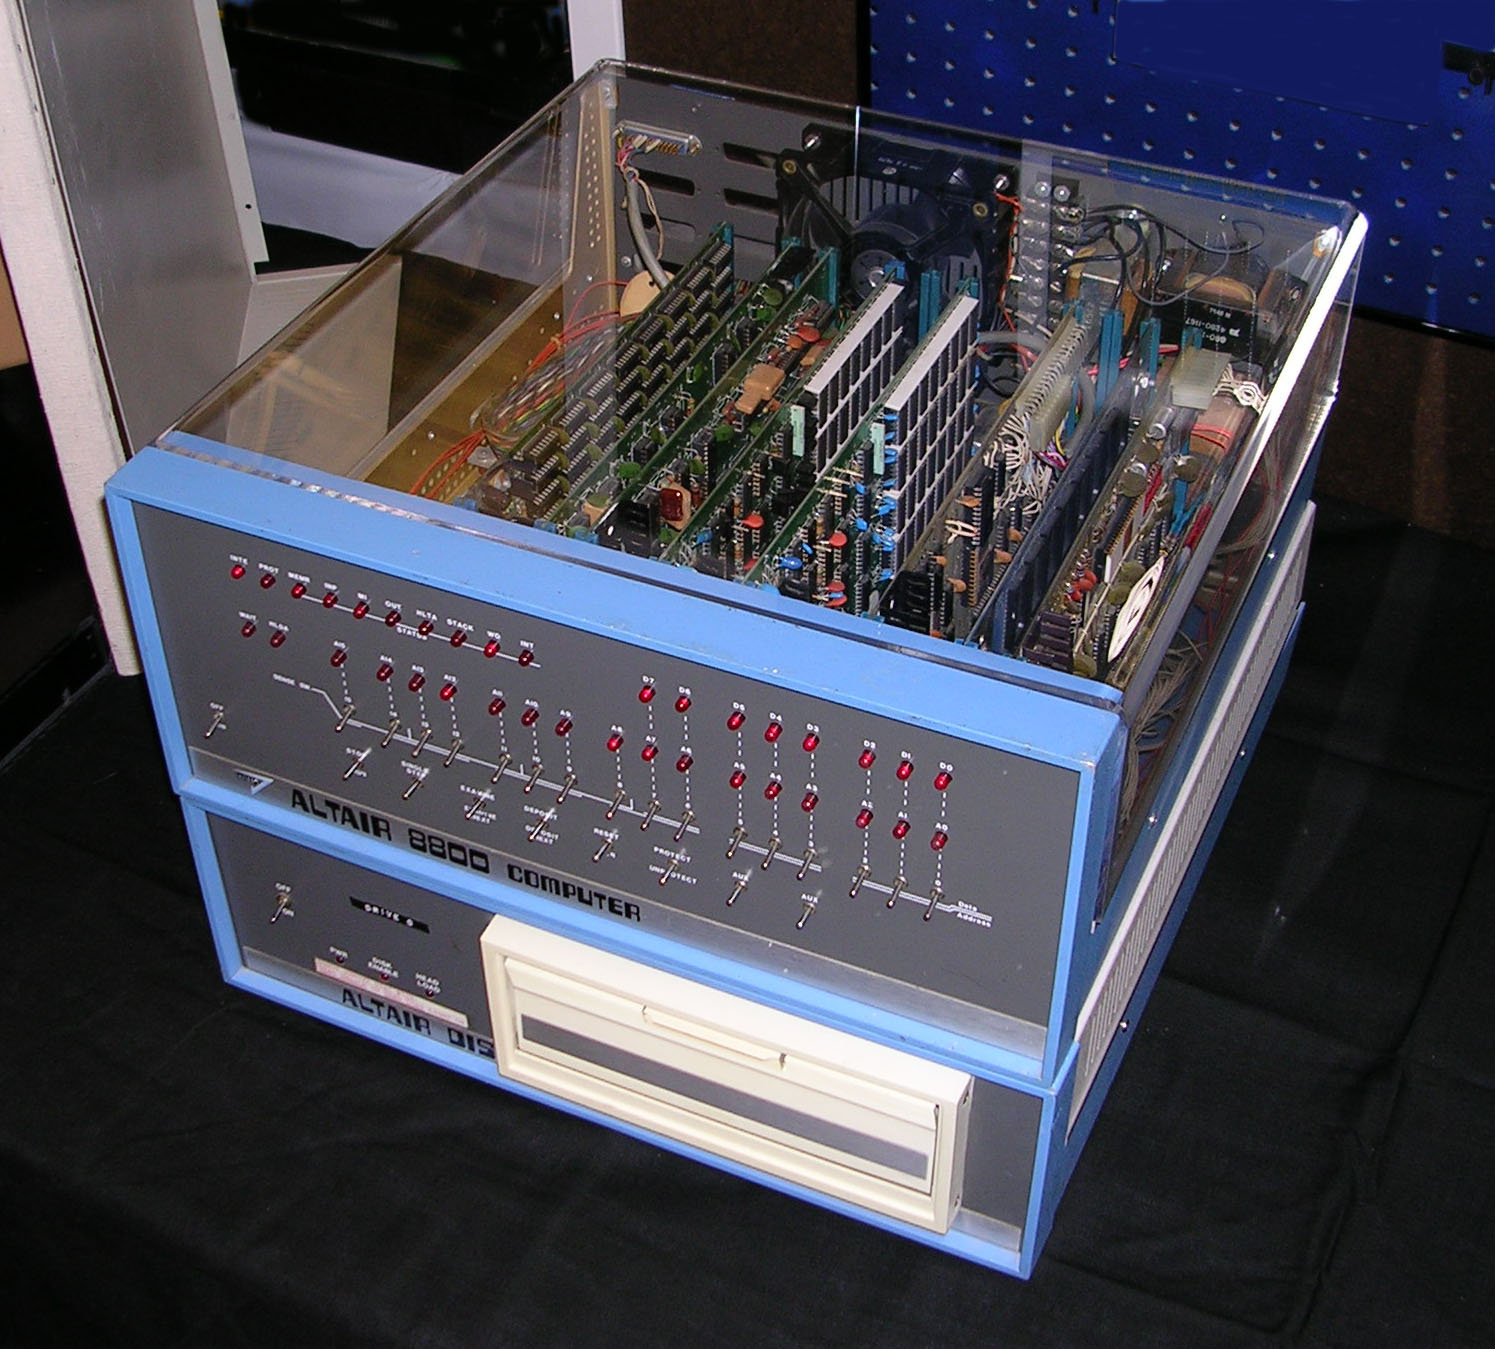 Antique Computers - Altair 8800